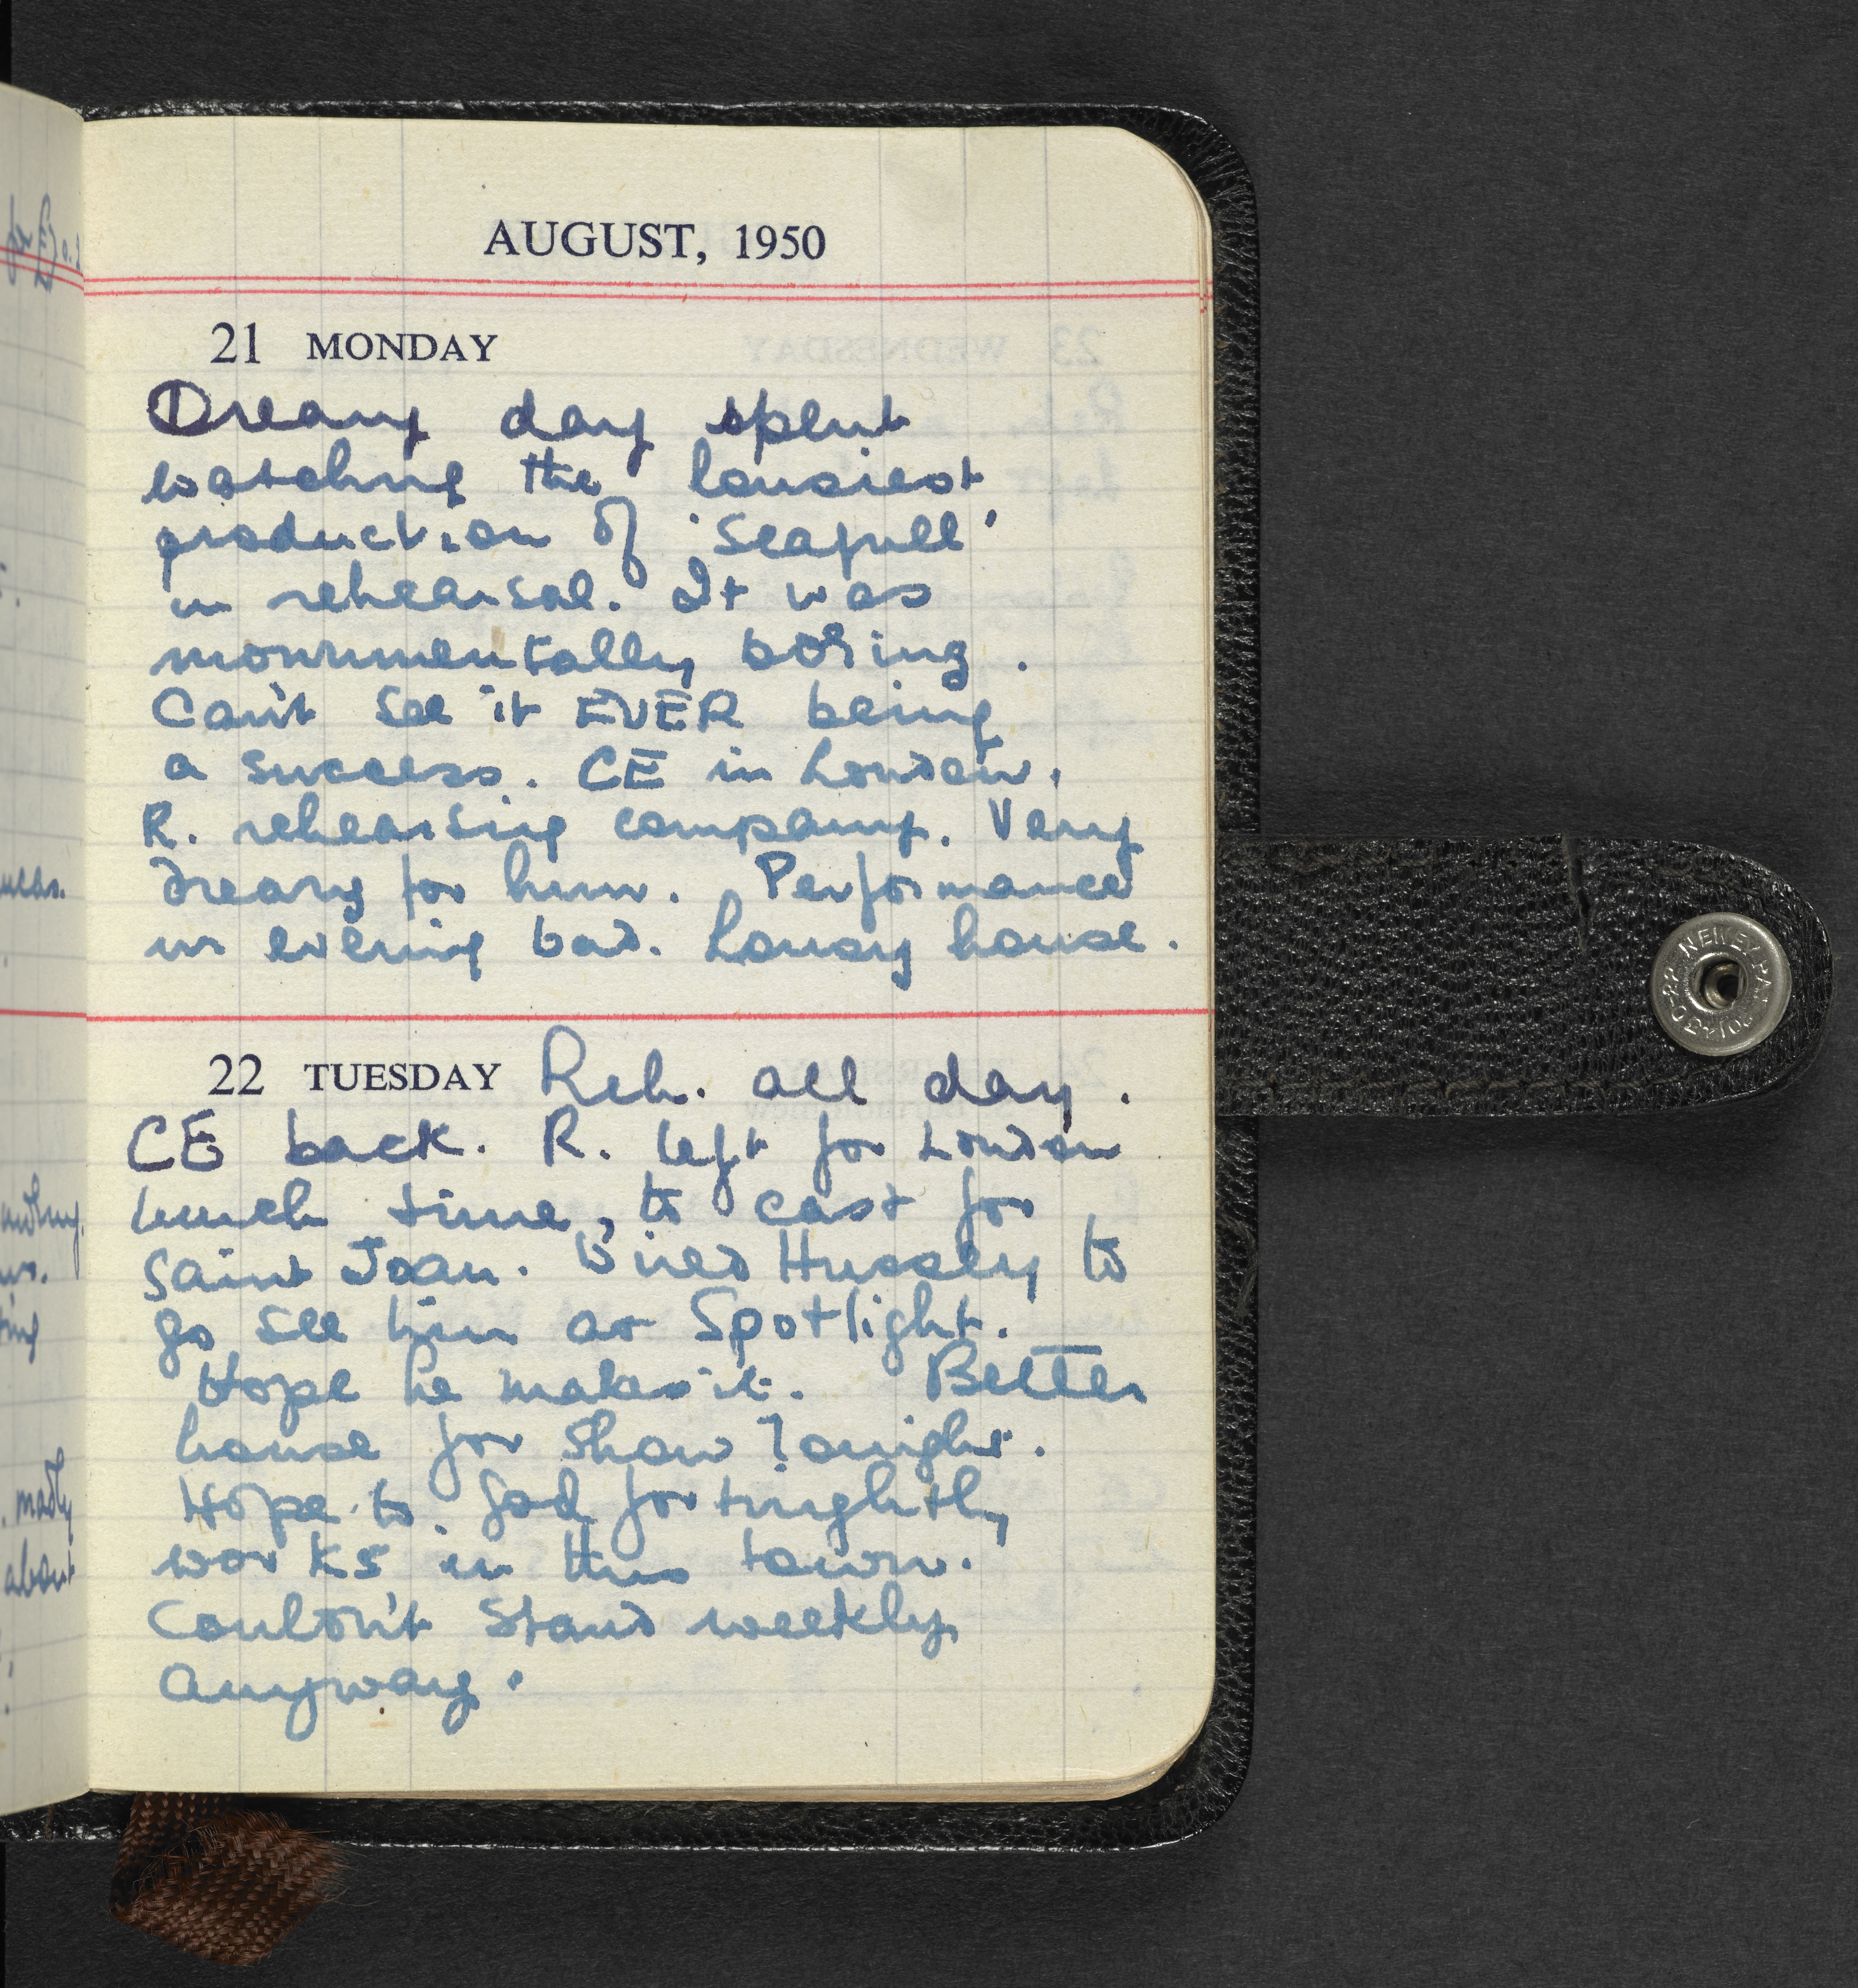 Page from Kenneth Williams' diary from 21 August 1950, courtesy of the Kenneth Williams estate